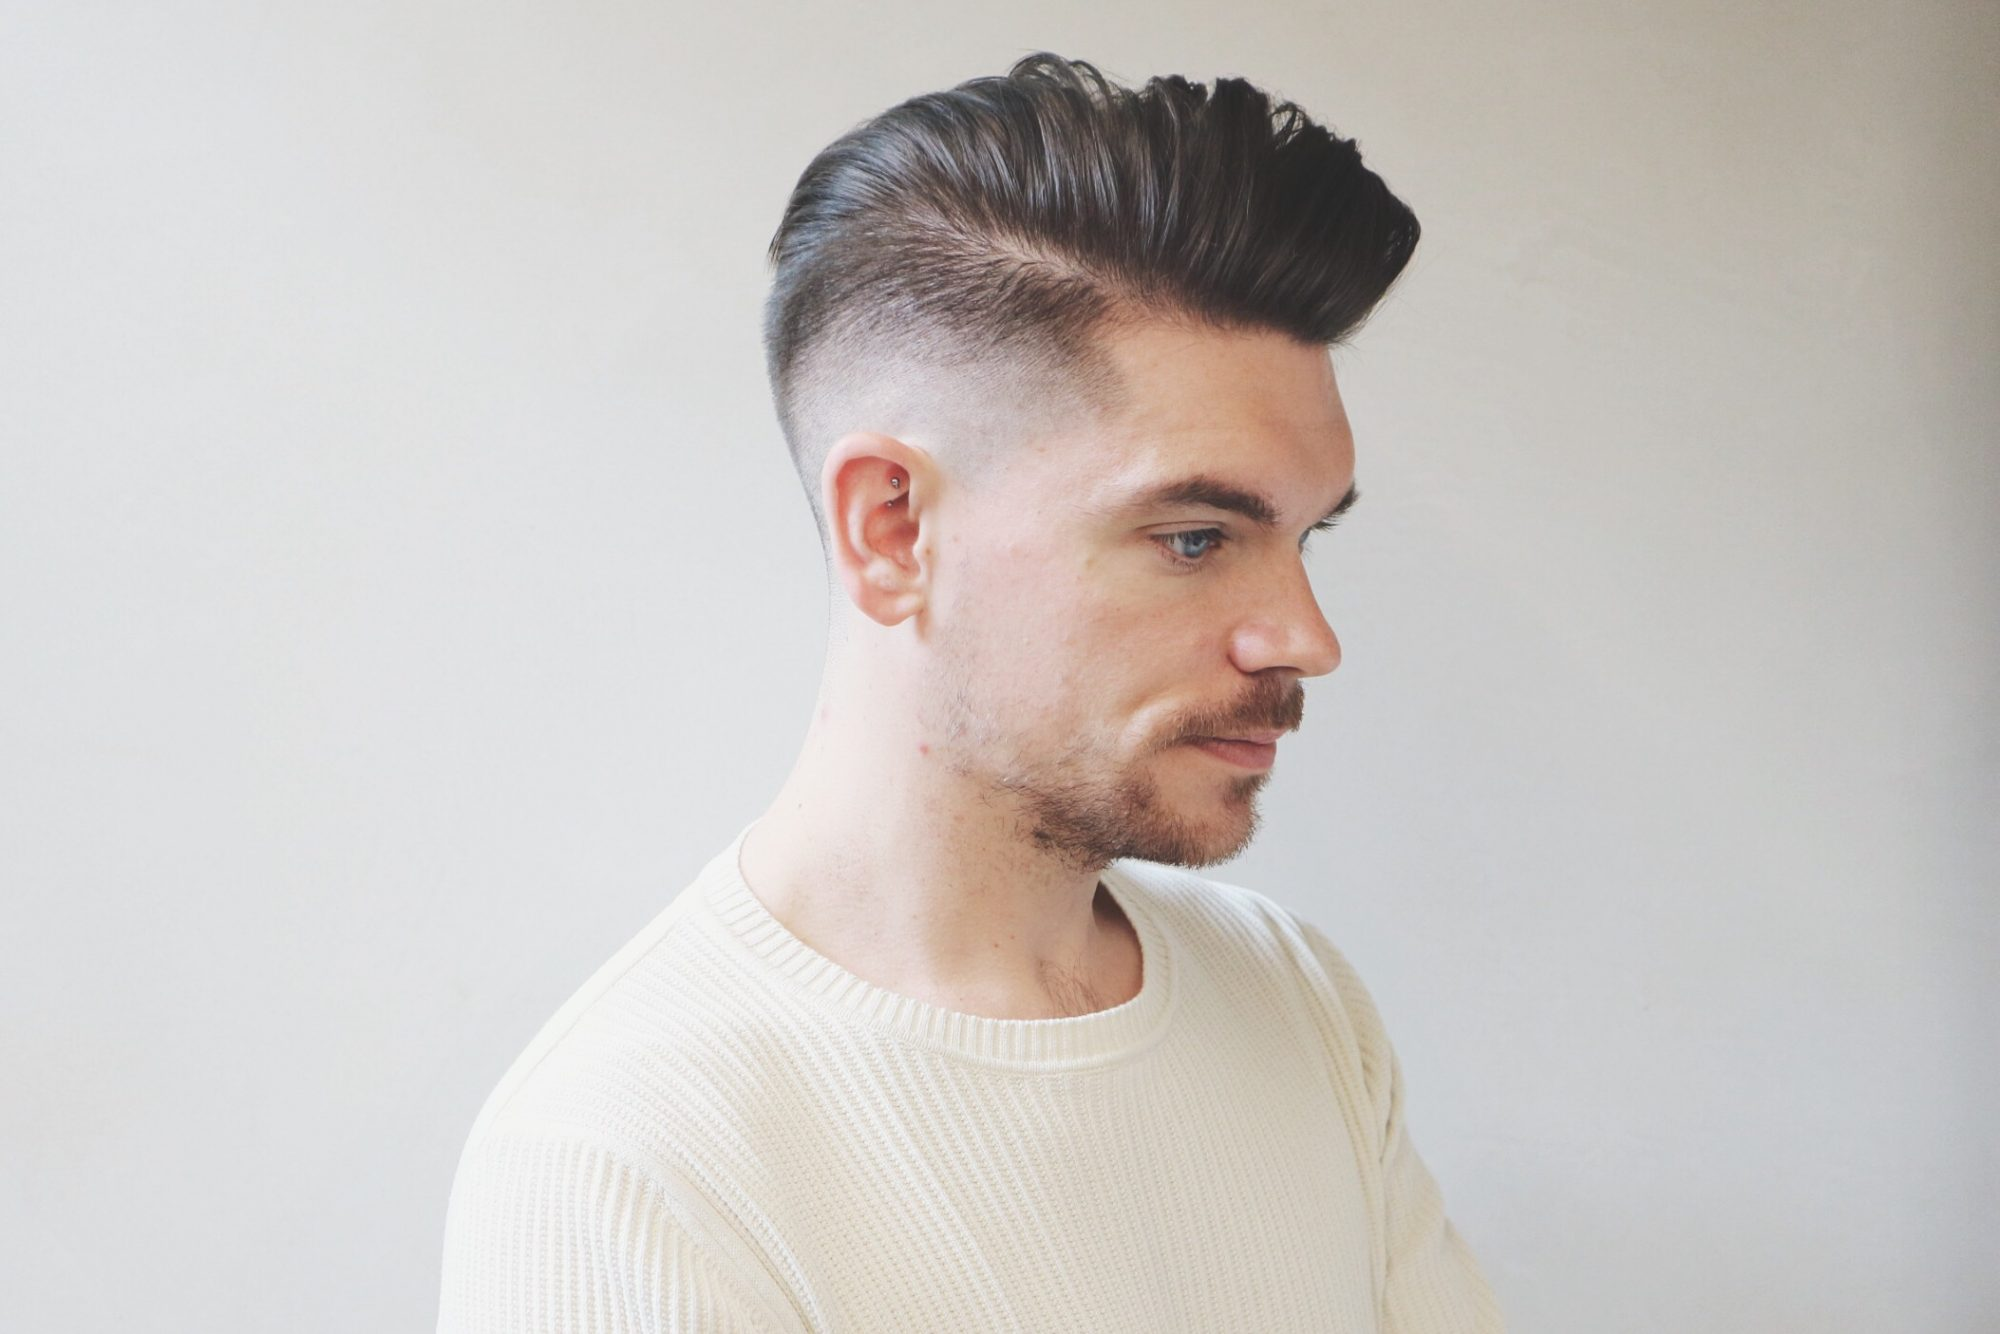 Skin Fade With Side Pomp Summer Haircut And Style Man For Himself